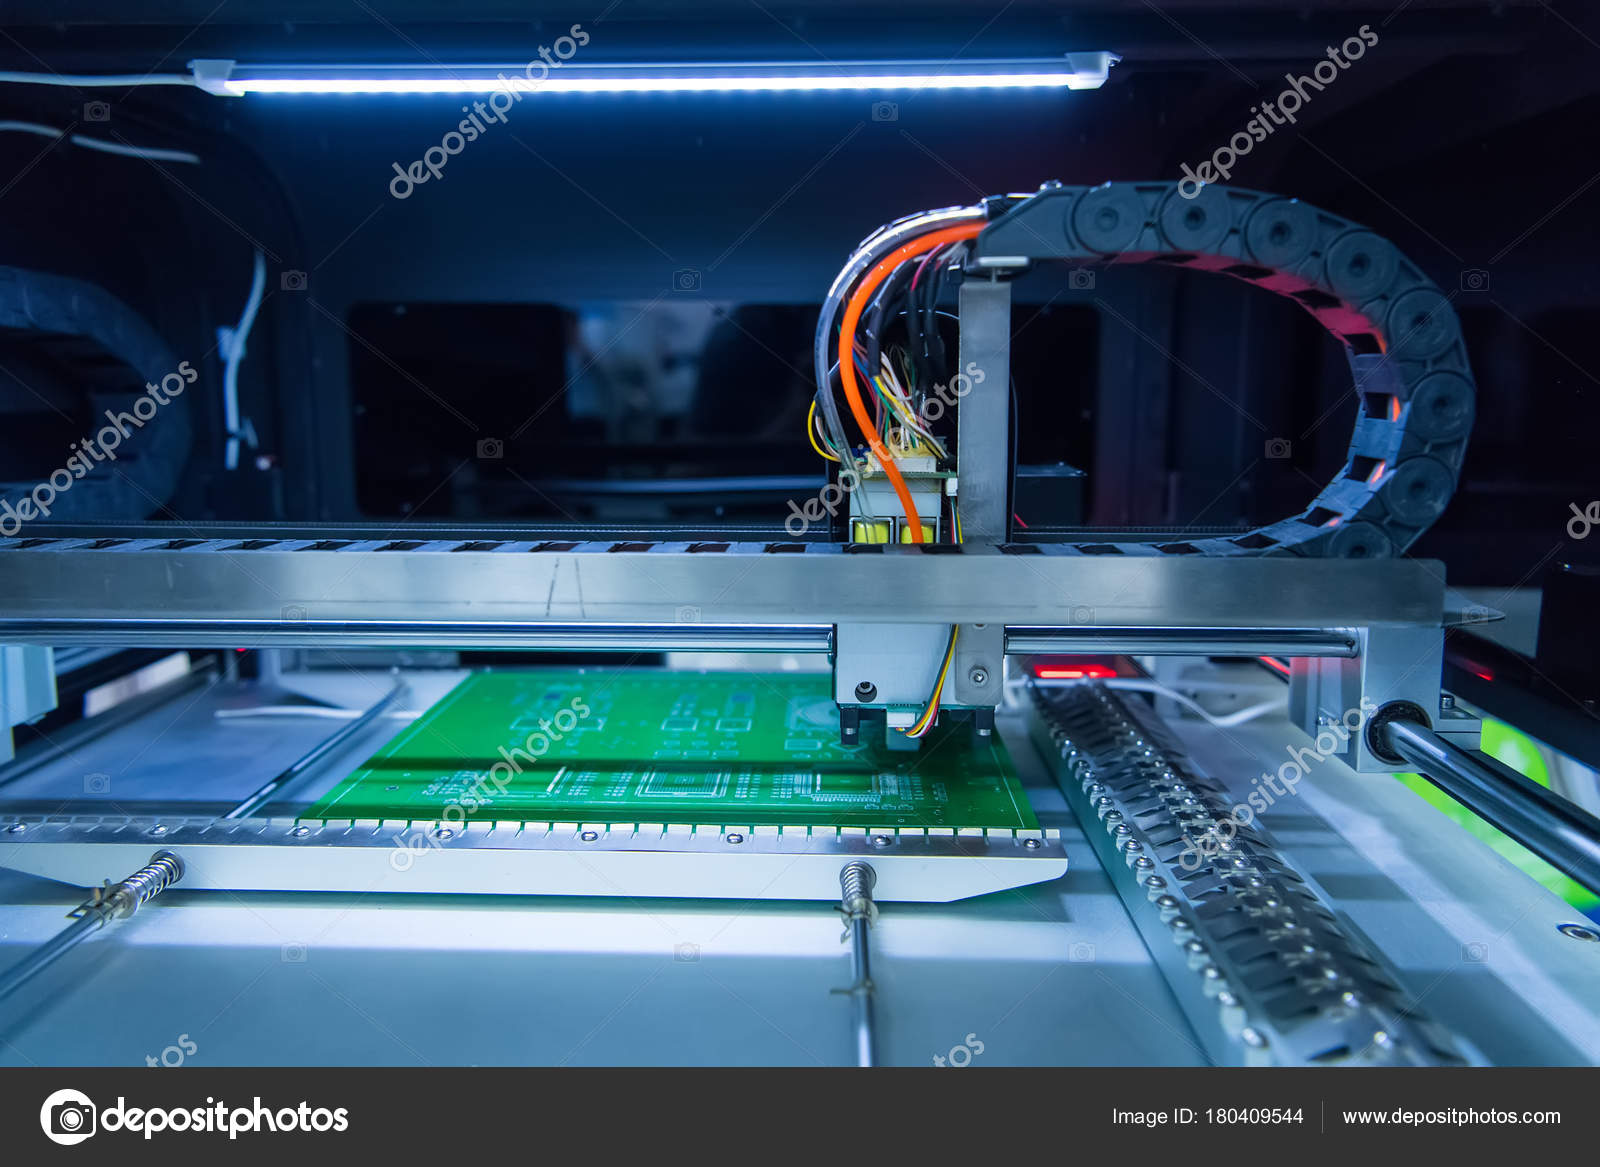 Printed Circuit Boards Production Factory Technological Process Manufacturing The Board Assembling Stock Photo